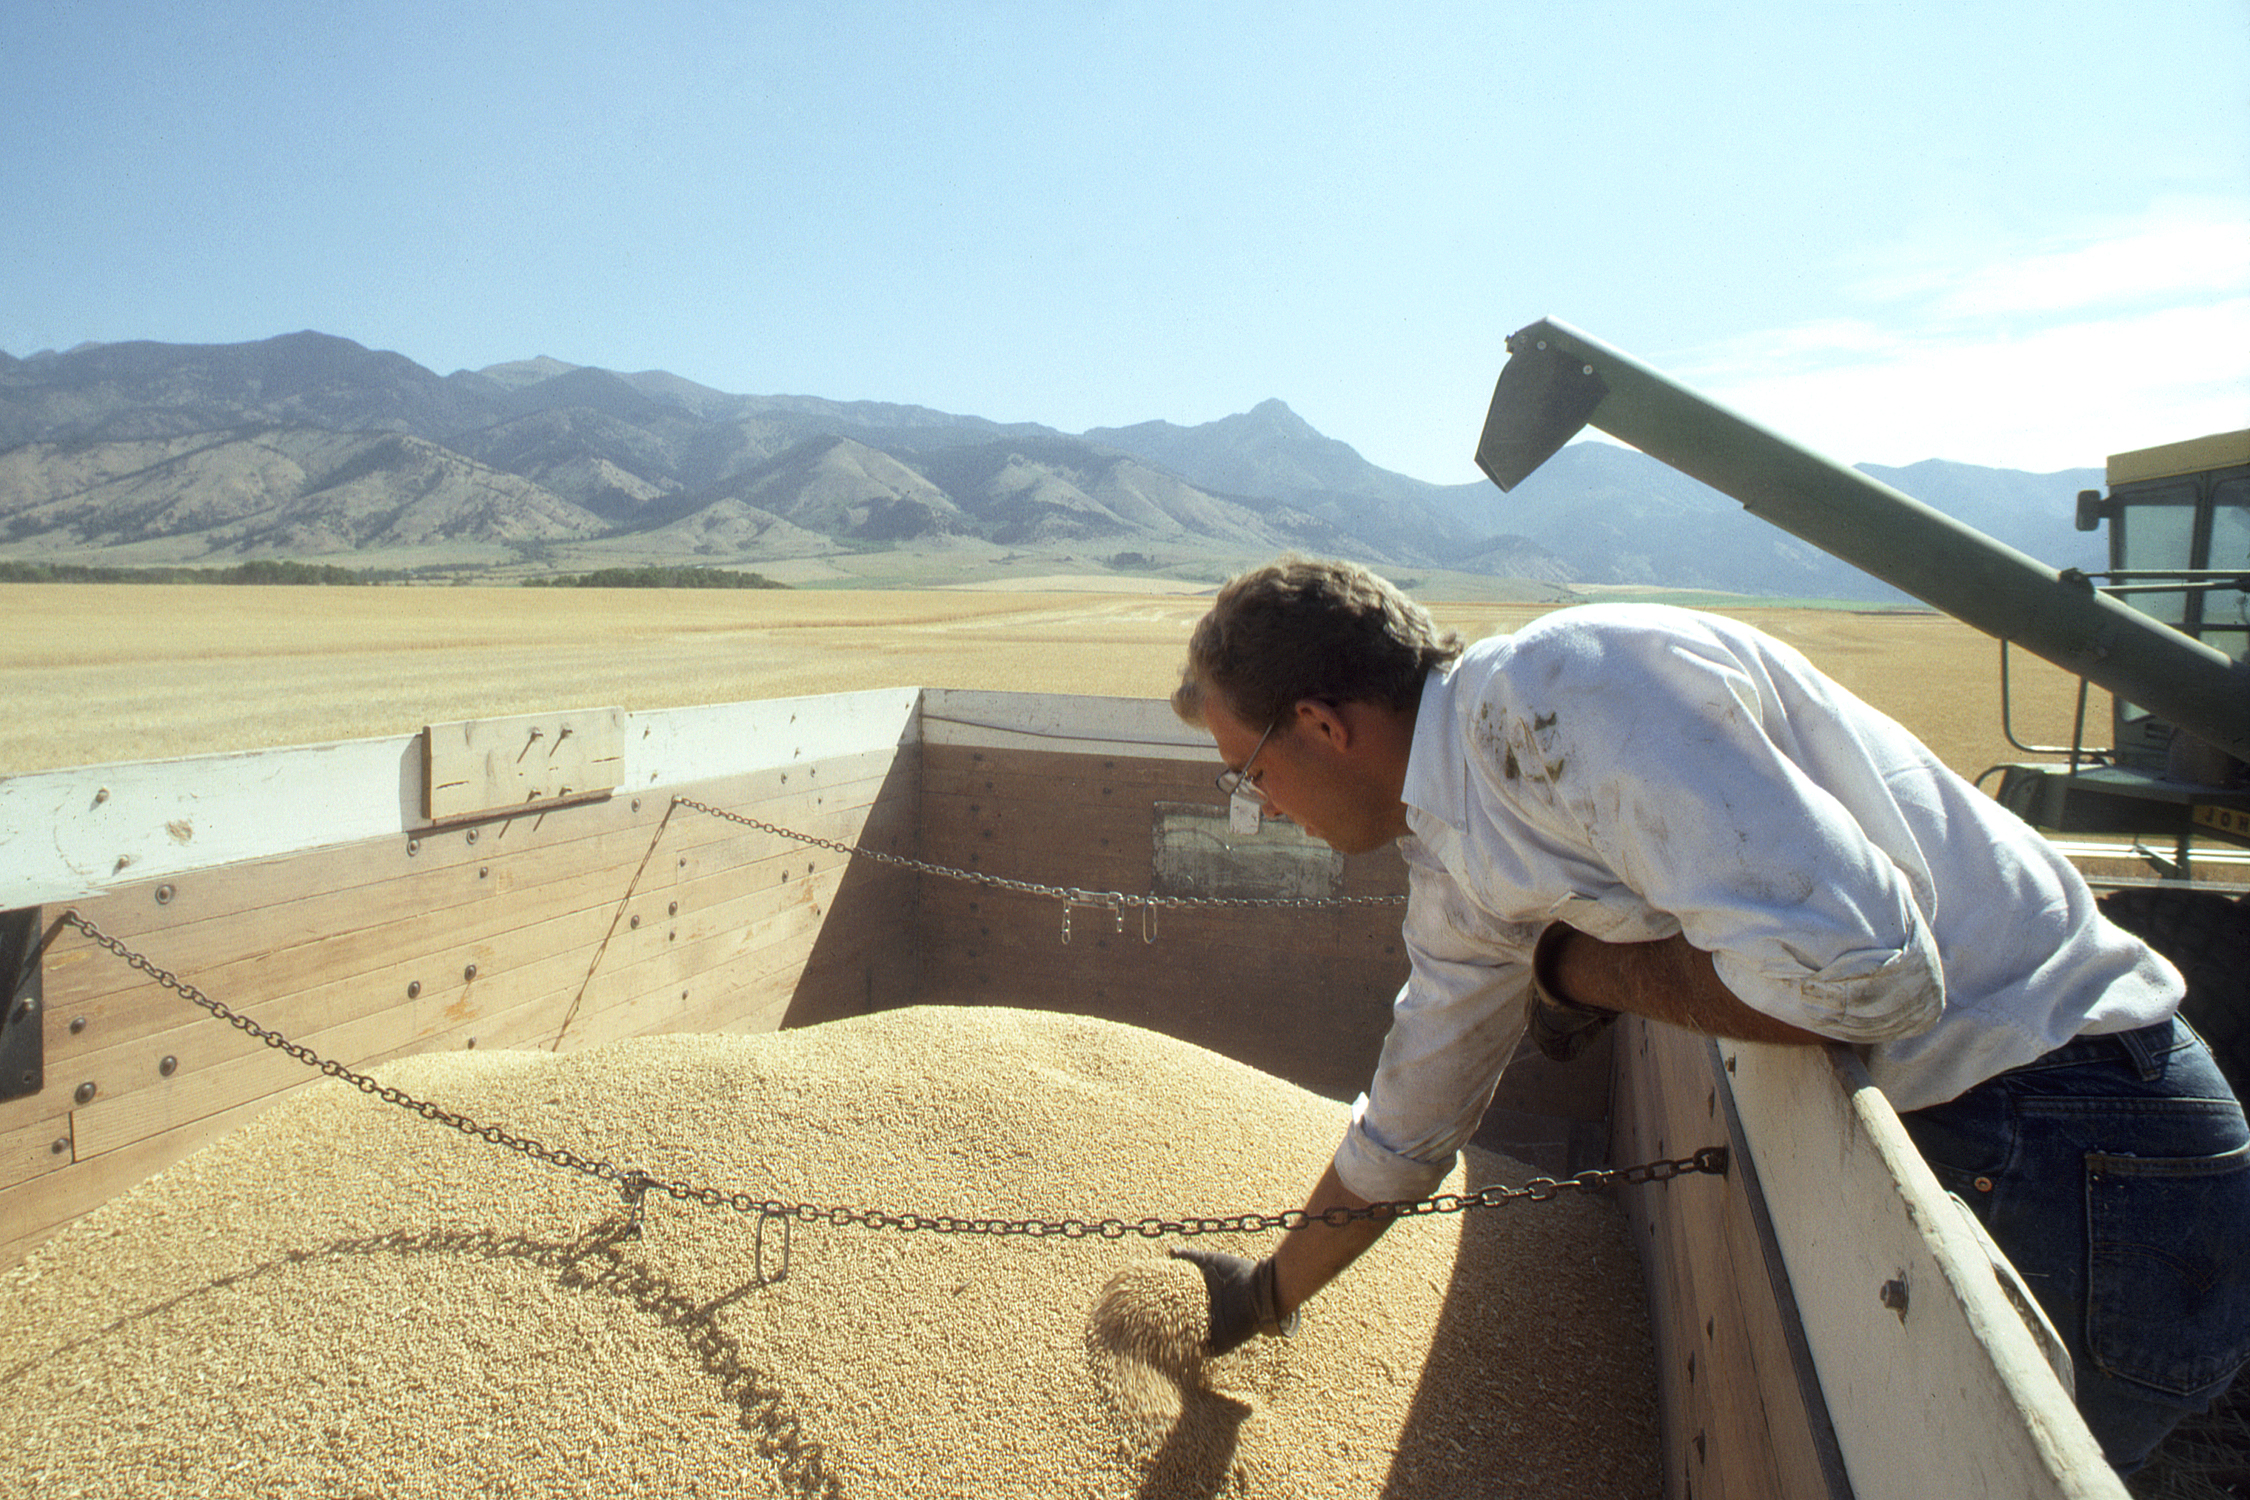 A photograph of a man looking at a truckload of grain.